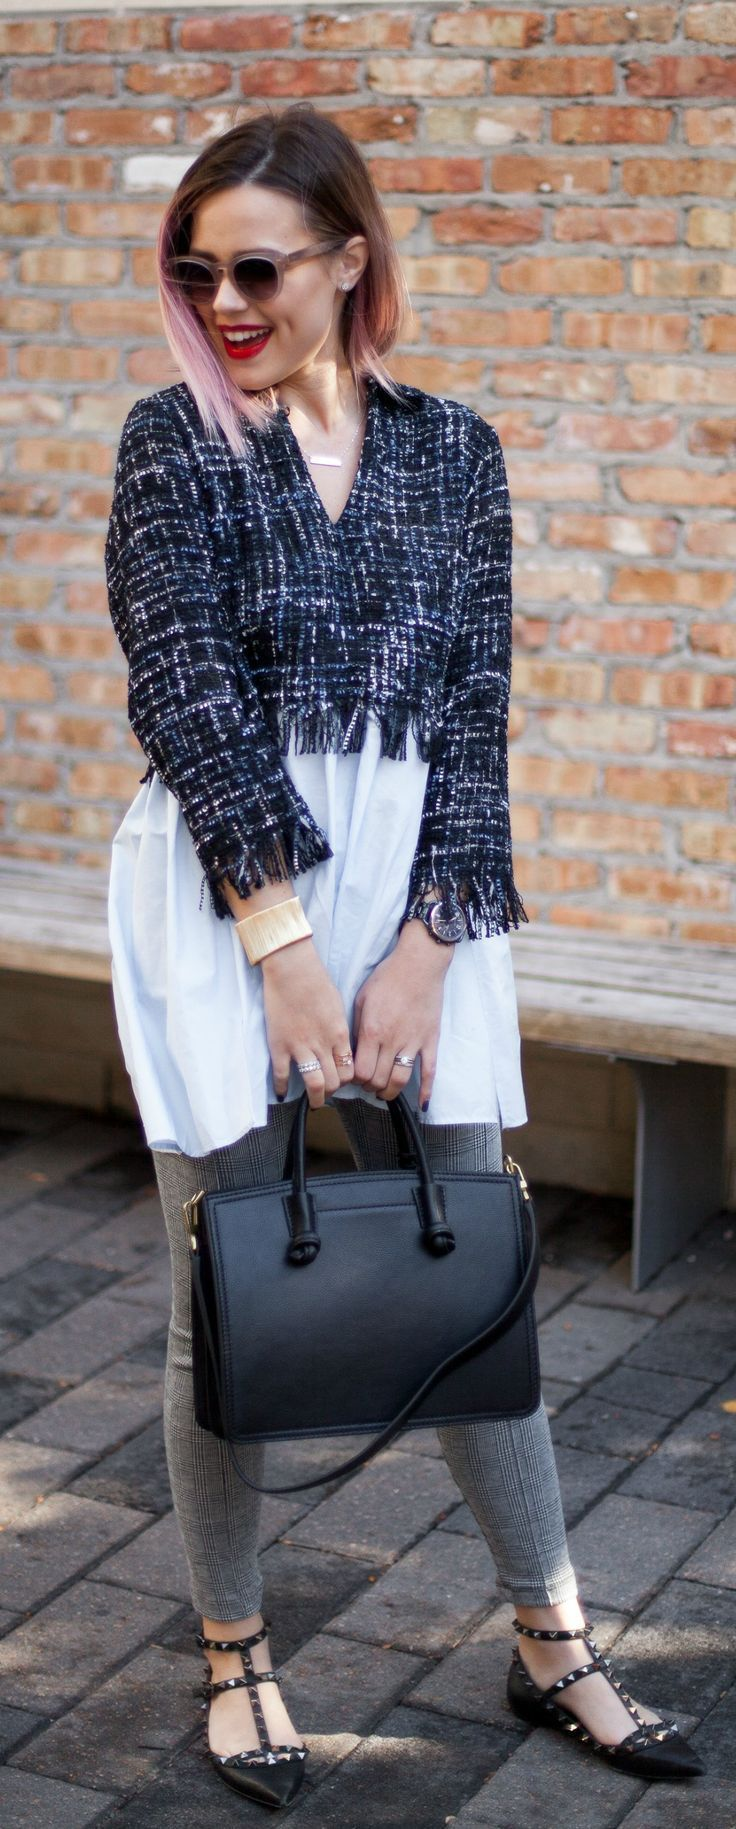 Casual Fall Style | Zara outfit | Tweed top | Fossil Bag | Uptown with Elly Brown